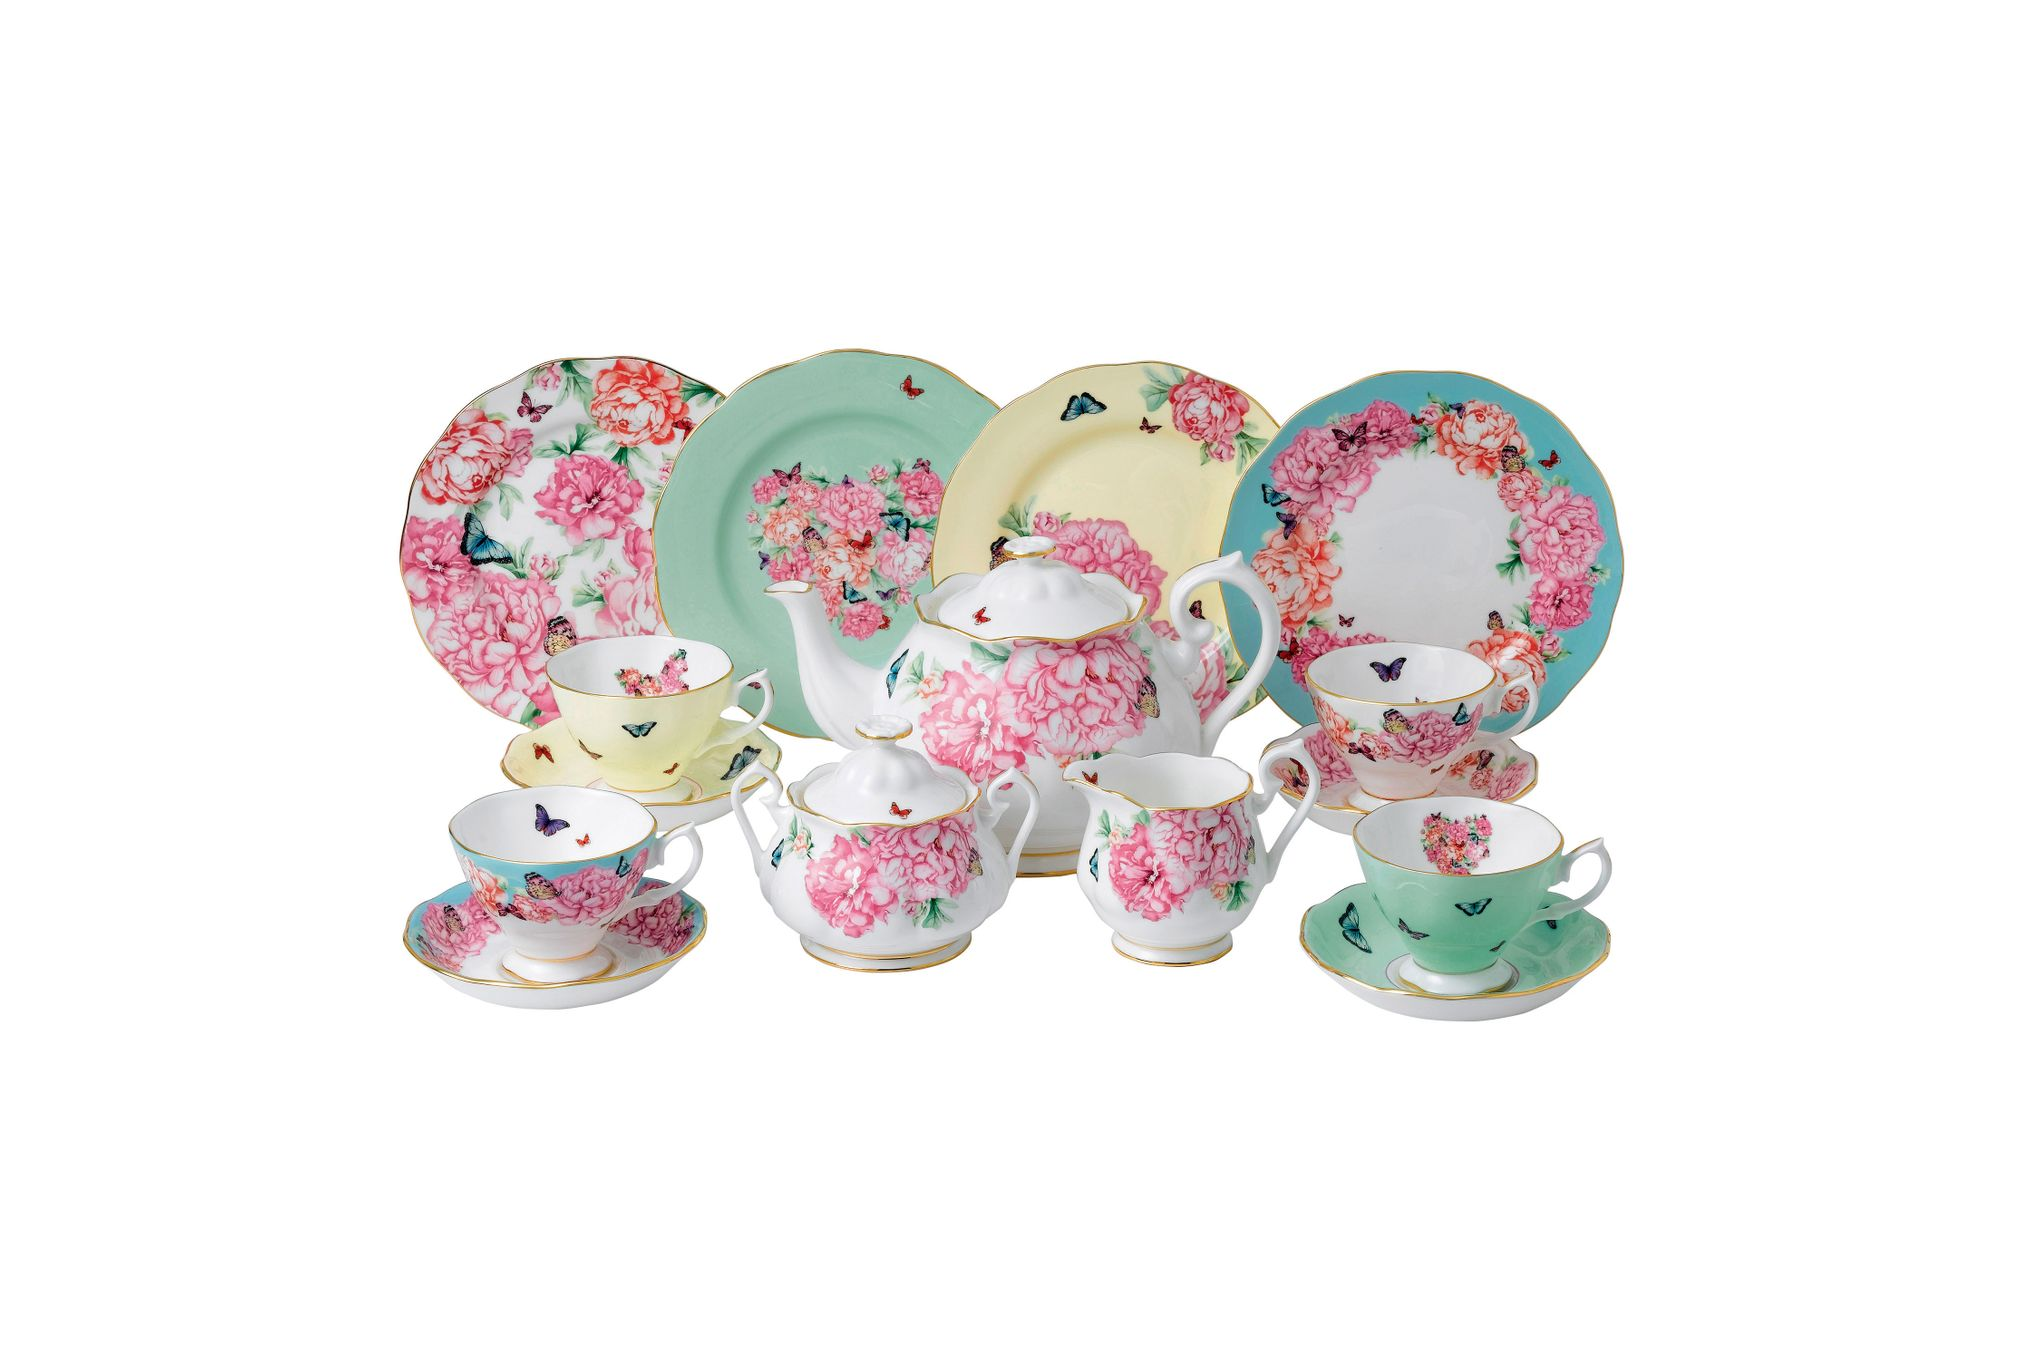 Miranda Kerr for Royal Albert Gift Sets 15 Piece Set Teacup, Saucer, Plate 20cm, Teapot, Sugar, Cream thumb 1